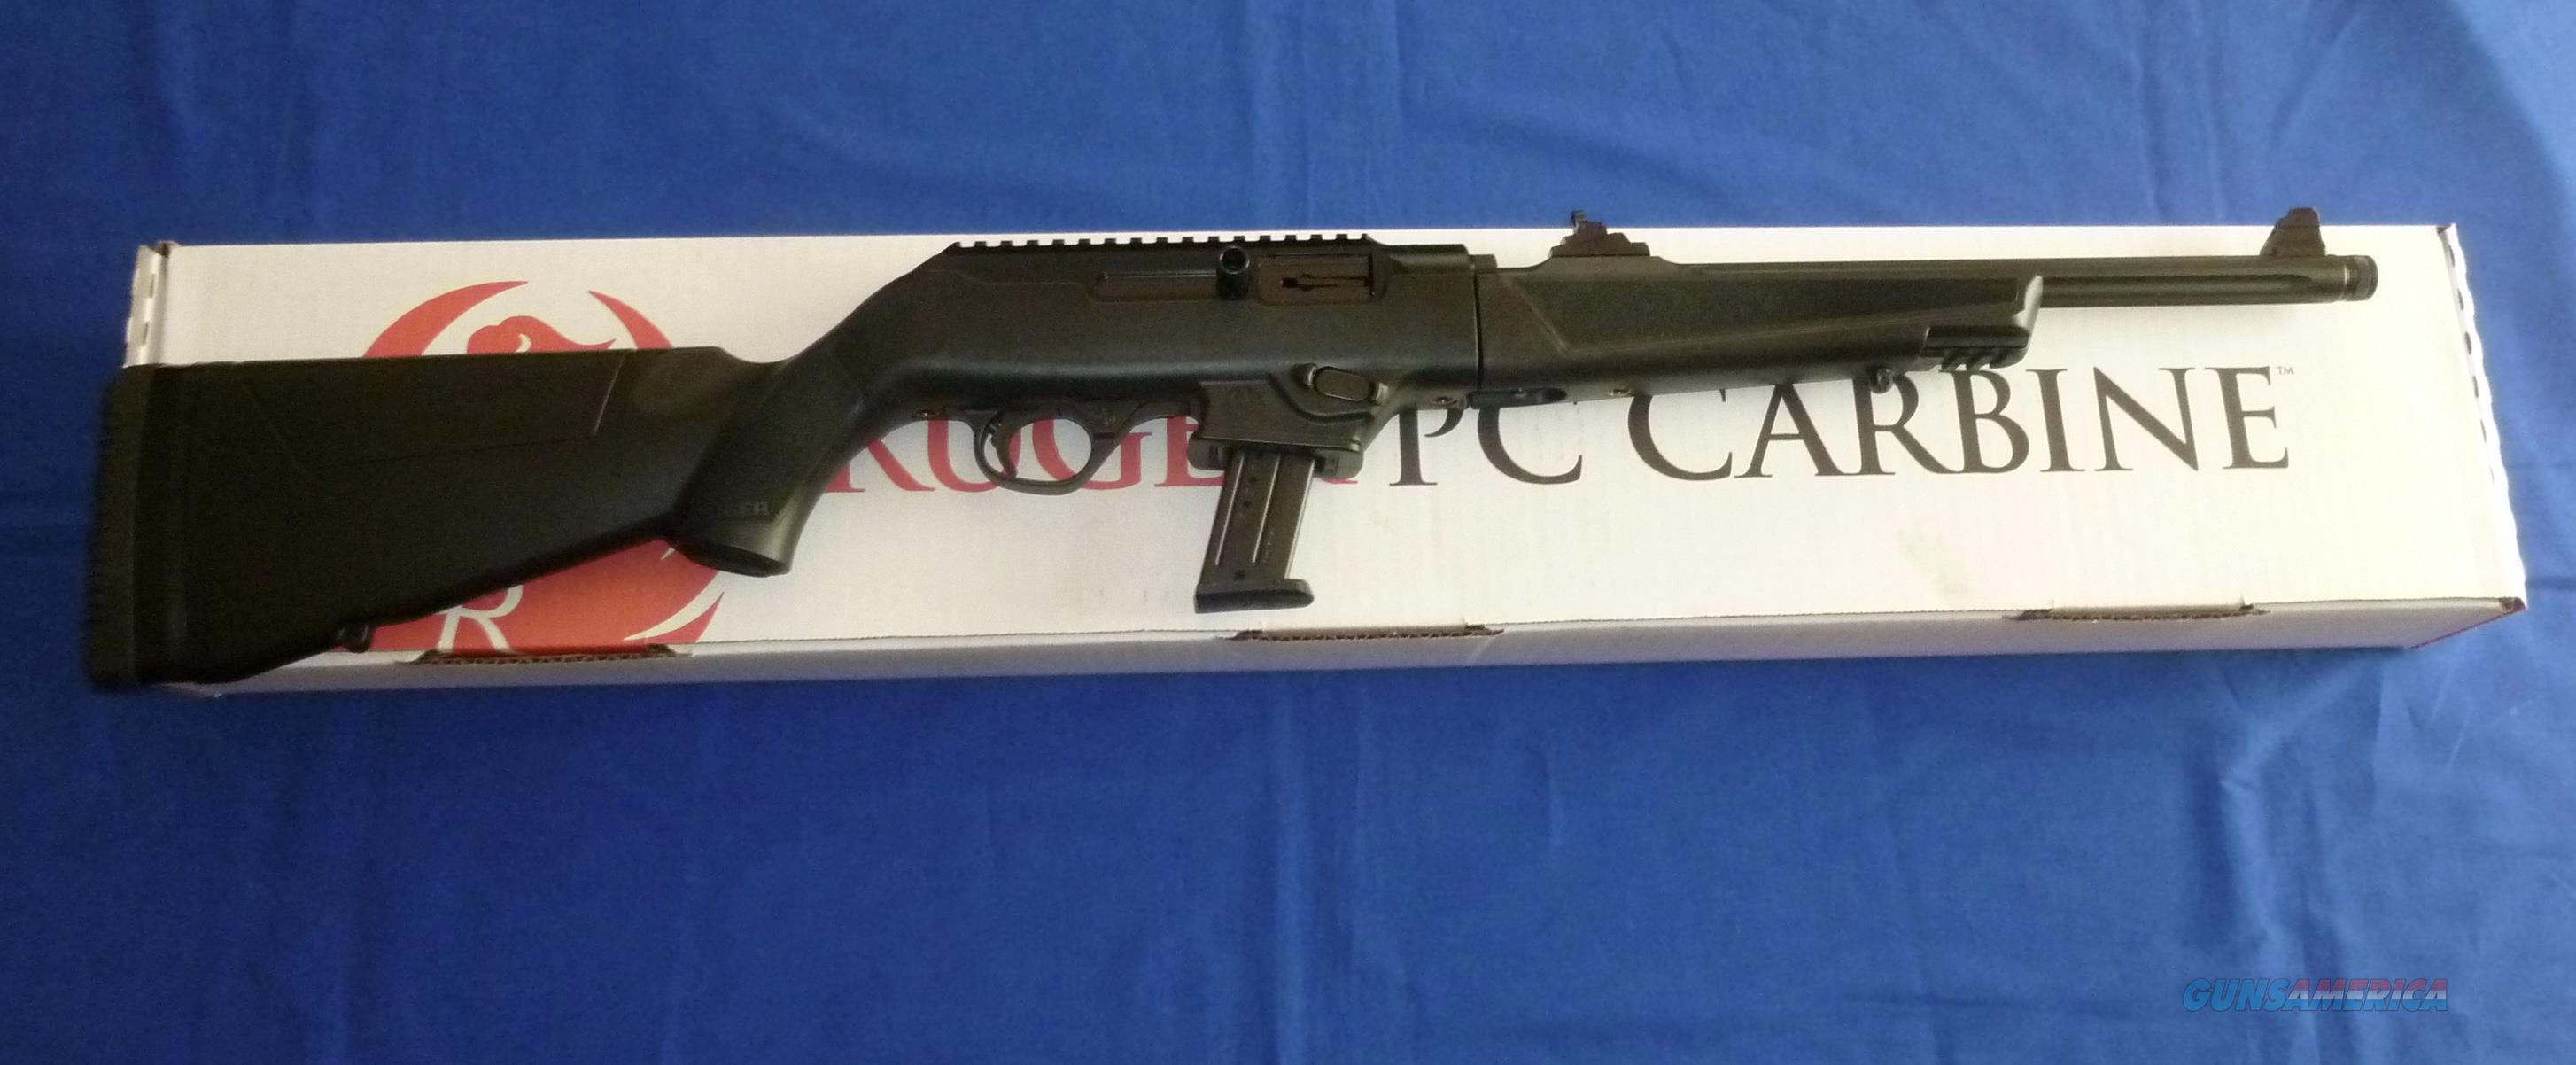 RUGER PC CARBINE 9MM SEMI-AUTO RIFLE 17 ROUND  Guns > Rifles > Ruger Rifles > M44/Carbine